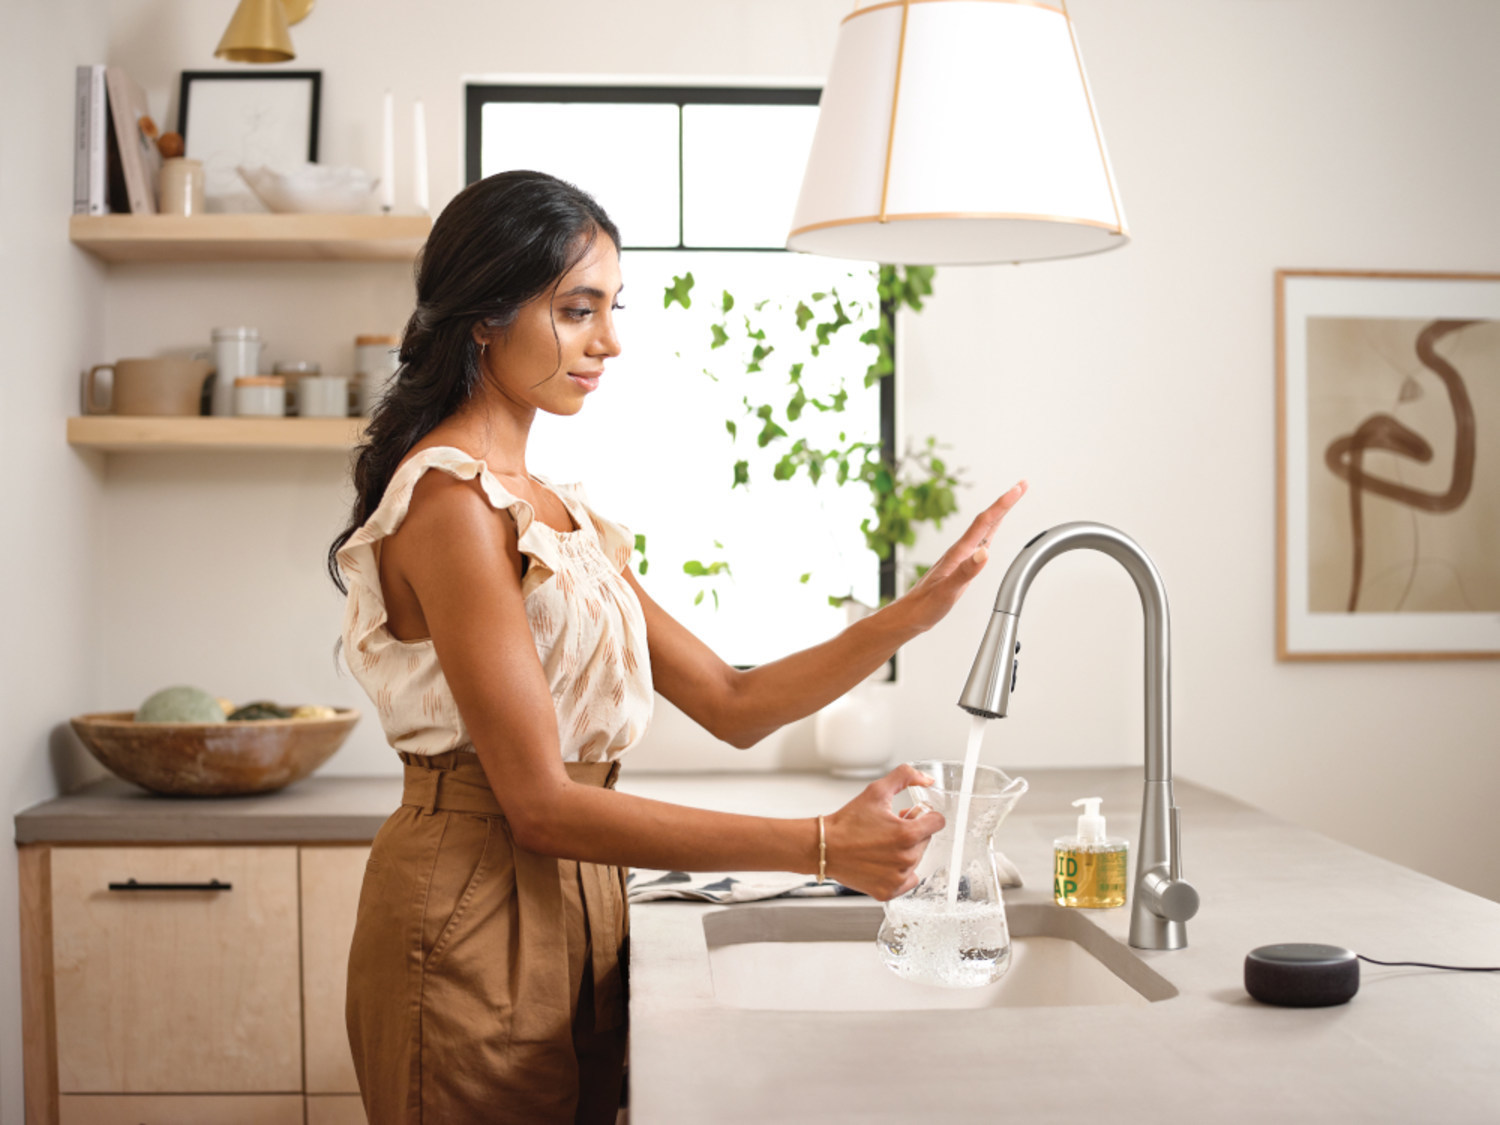 Moen Launches Industry-First Smart Water Network to Provide Convenience and Security; Experience it at CES 2021